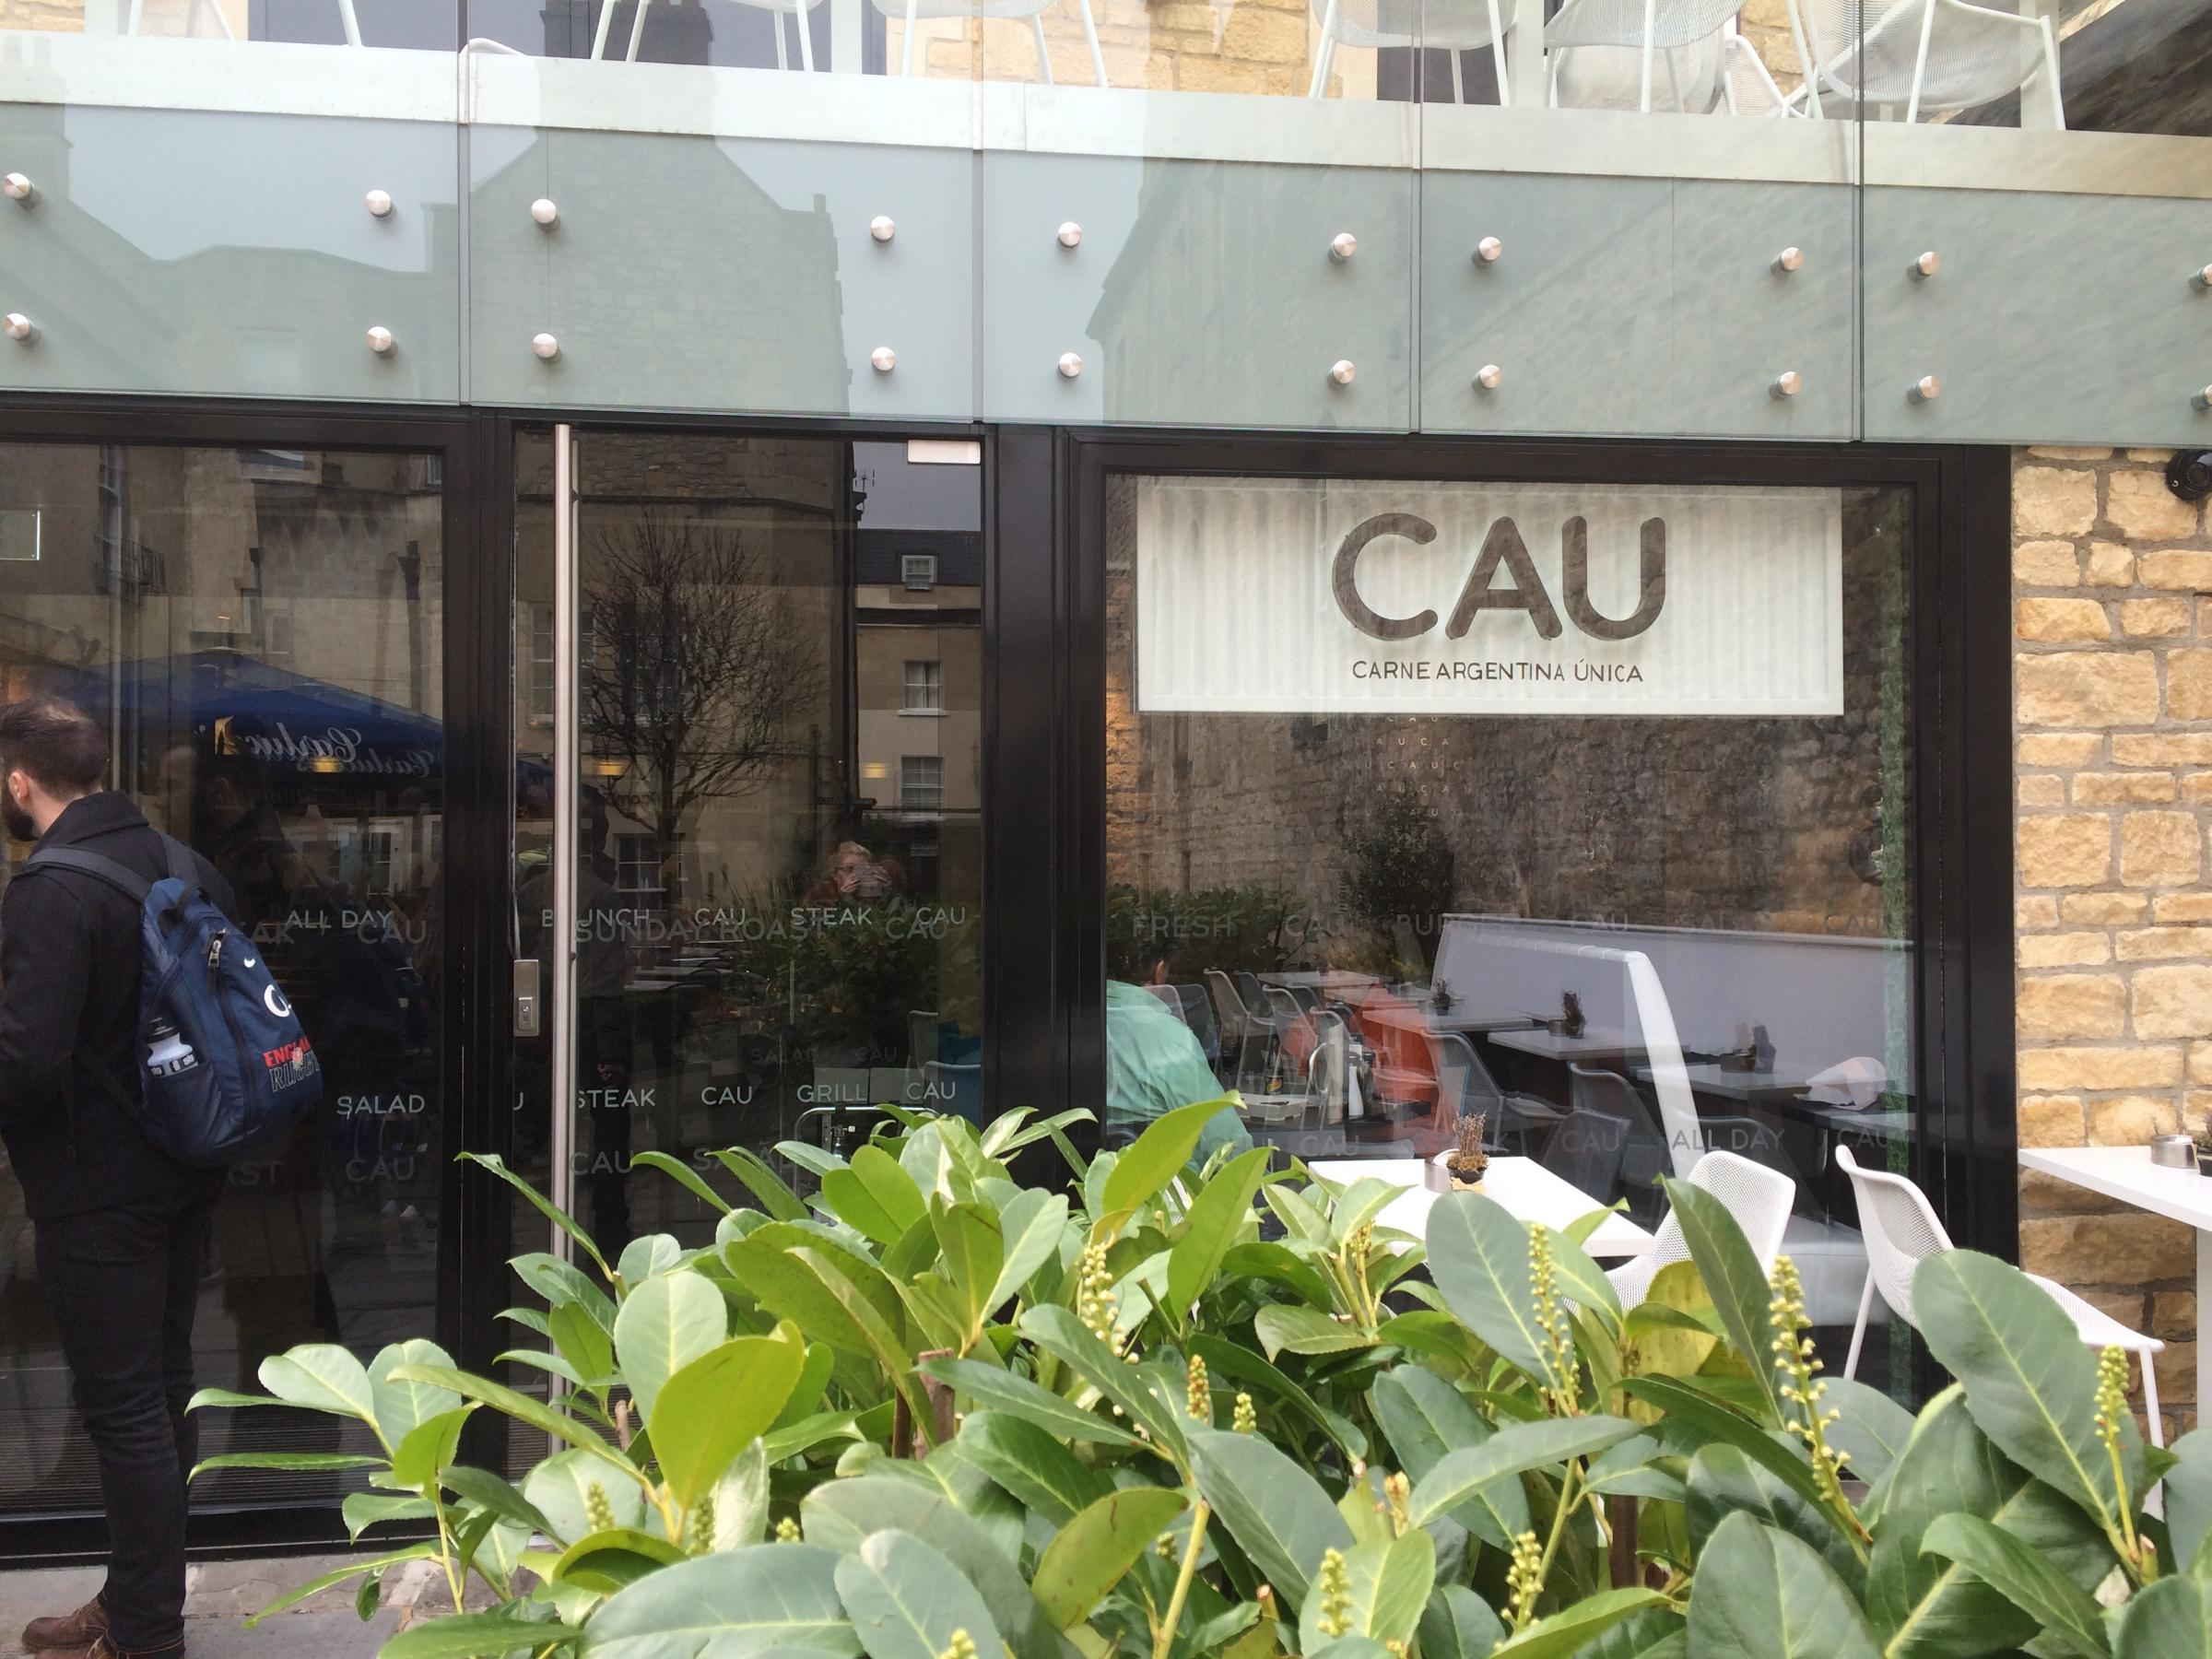 The newly opened CAU in Milsom Place, Bath